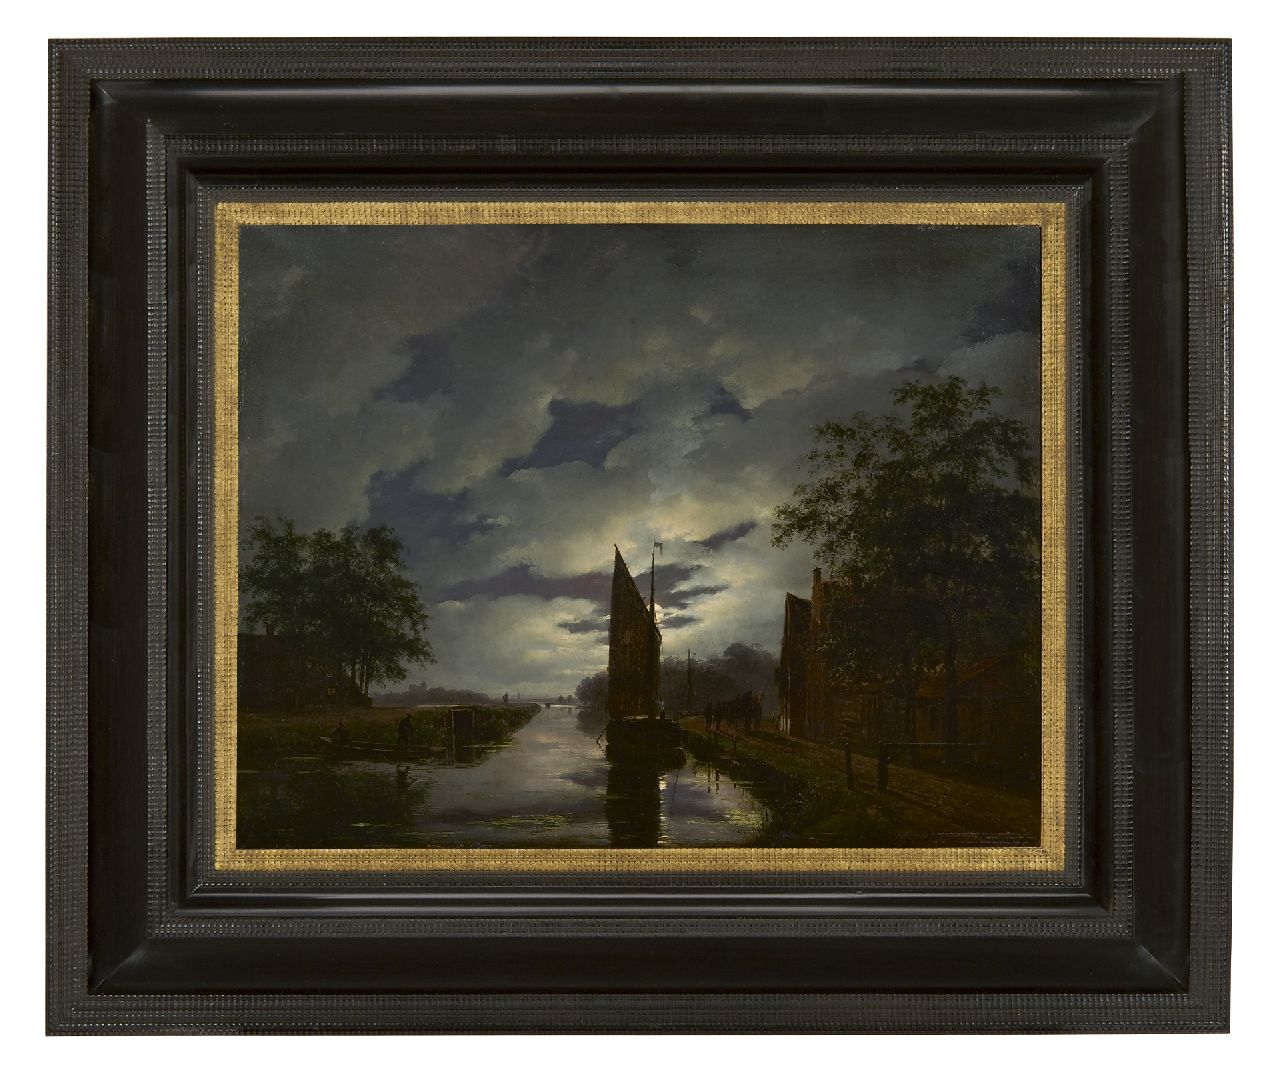 Schelfhout A.  | Andreas Schelfhout, A moonlit river landscape, oil on panel 38.2 x 49.3 cm, signed l.r. and painted ca. 1822